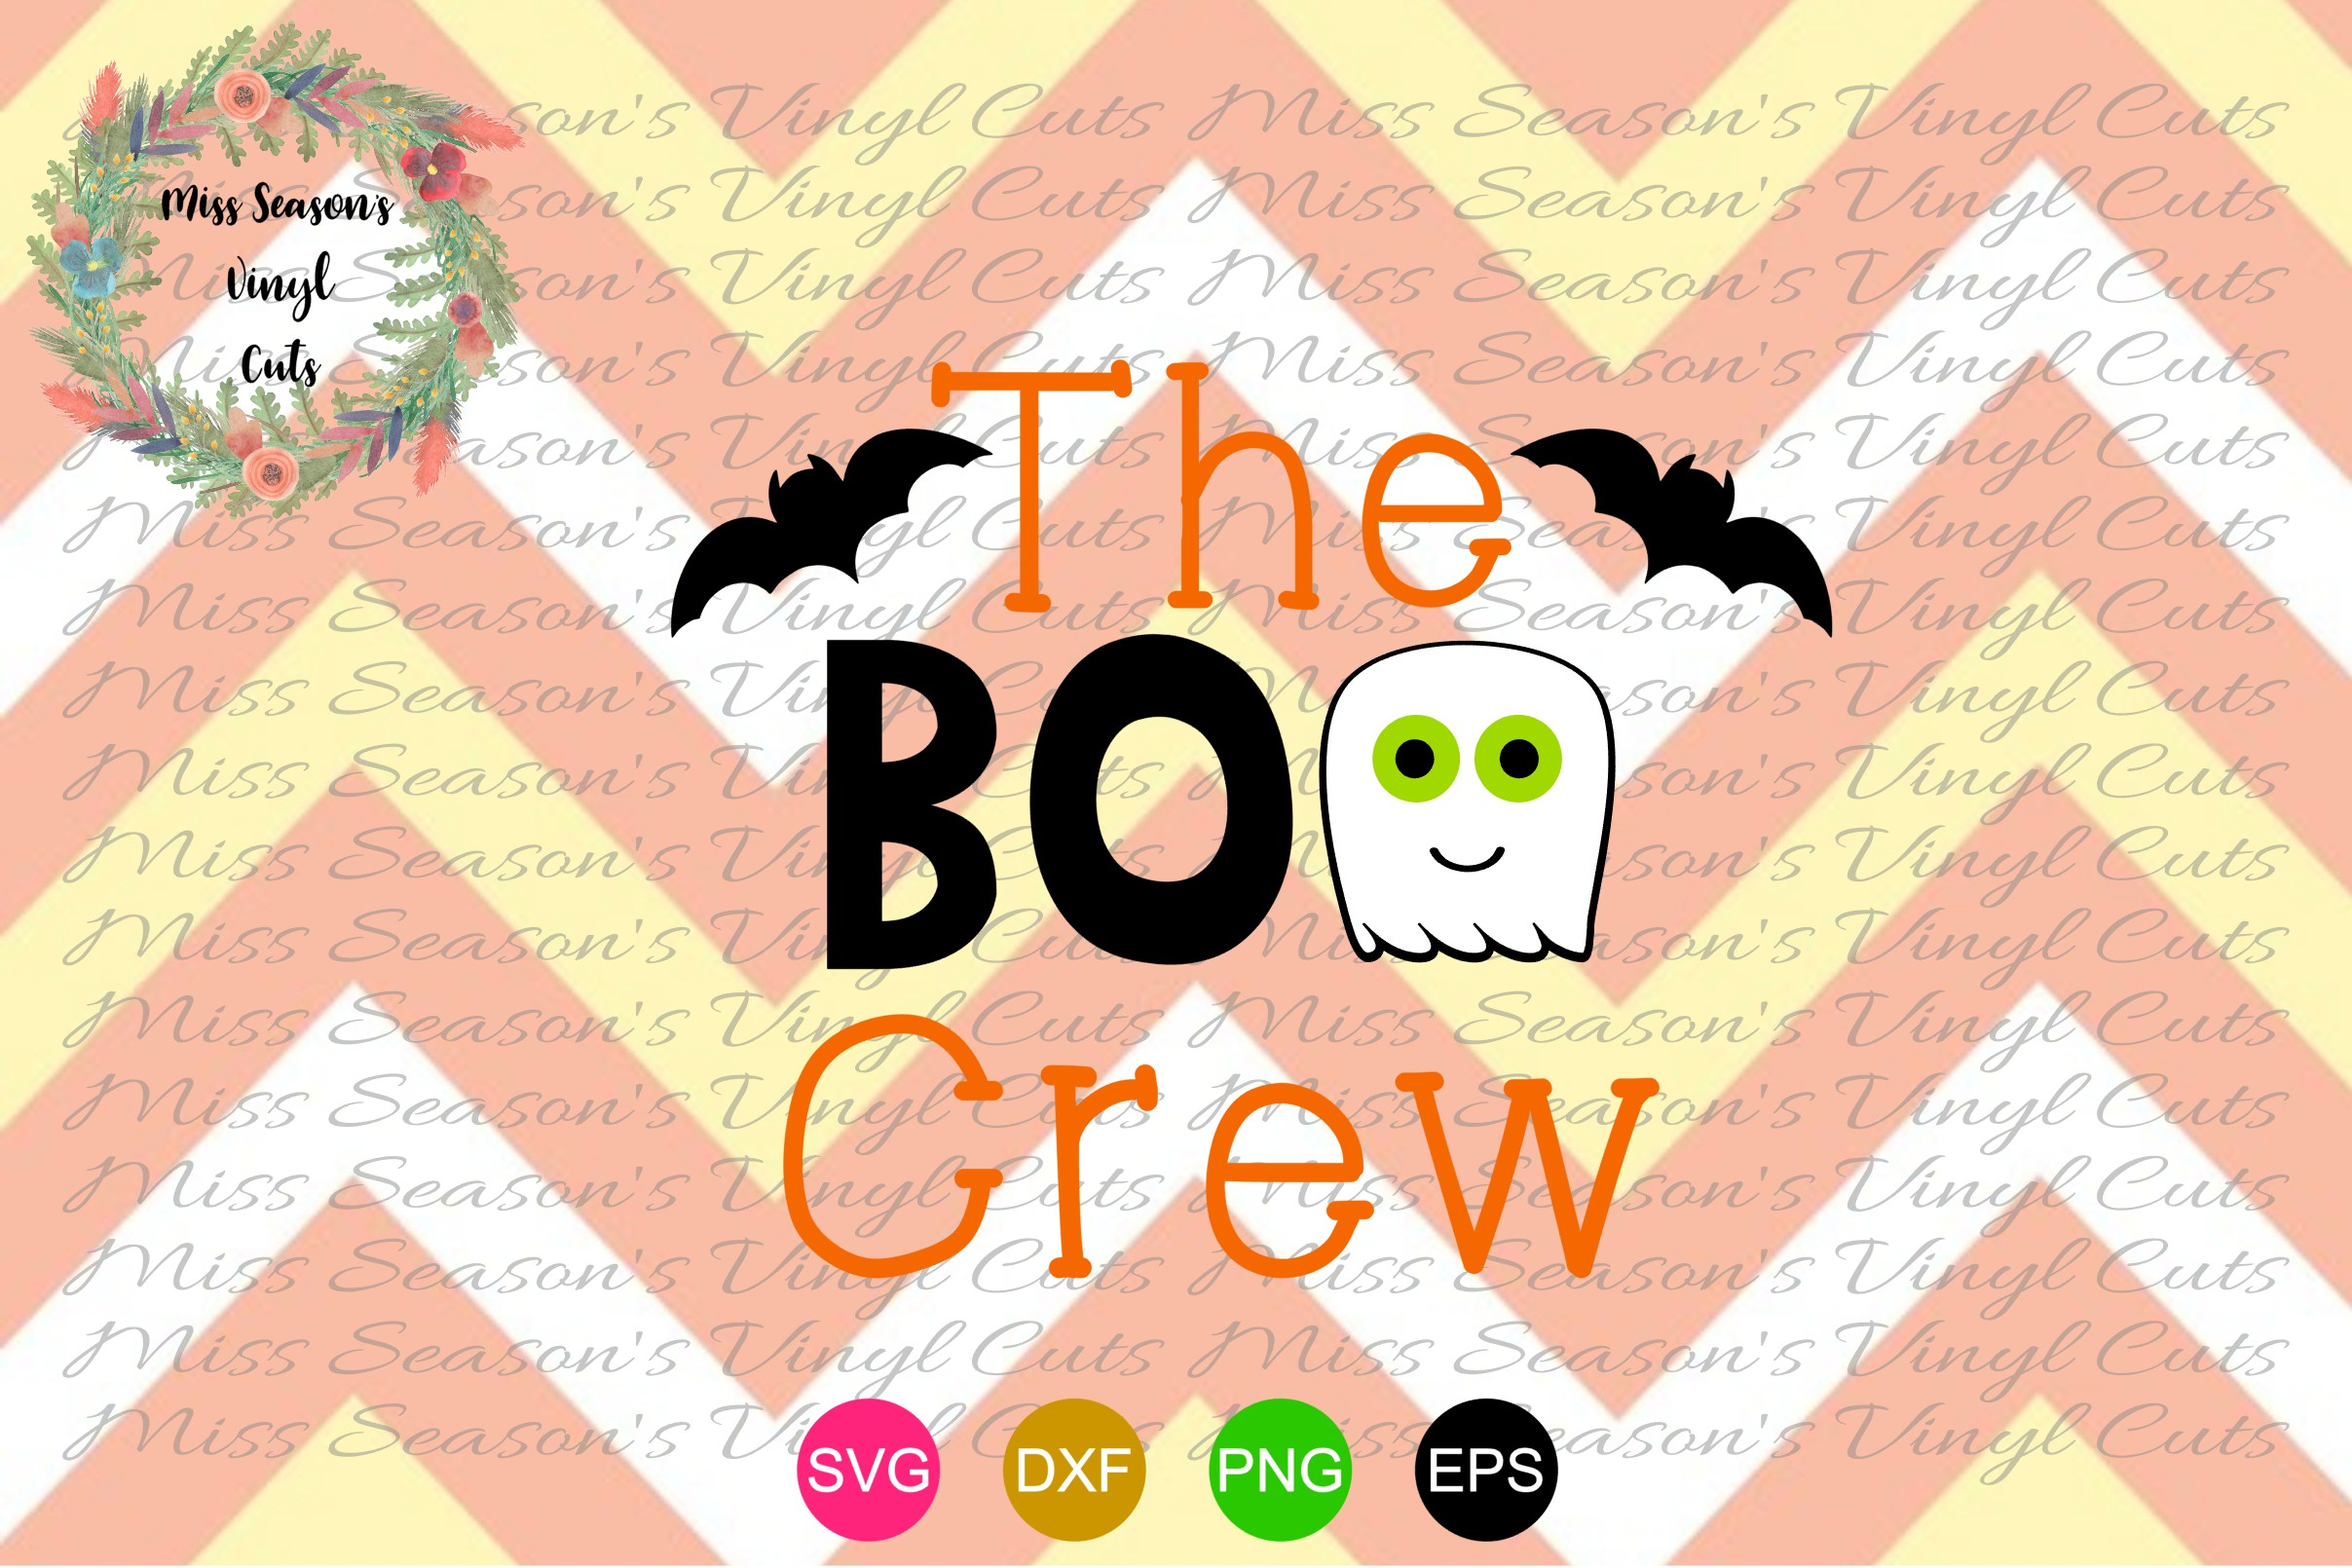 Download Free The Boo Crew Svg Halloween Svg Grafik Von Missseasonsvinylcuts for Cricut Explore, Silhouette and other cutting machines.